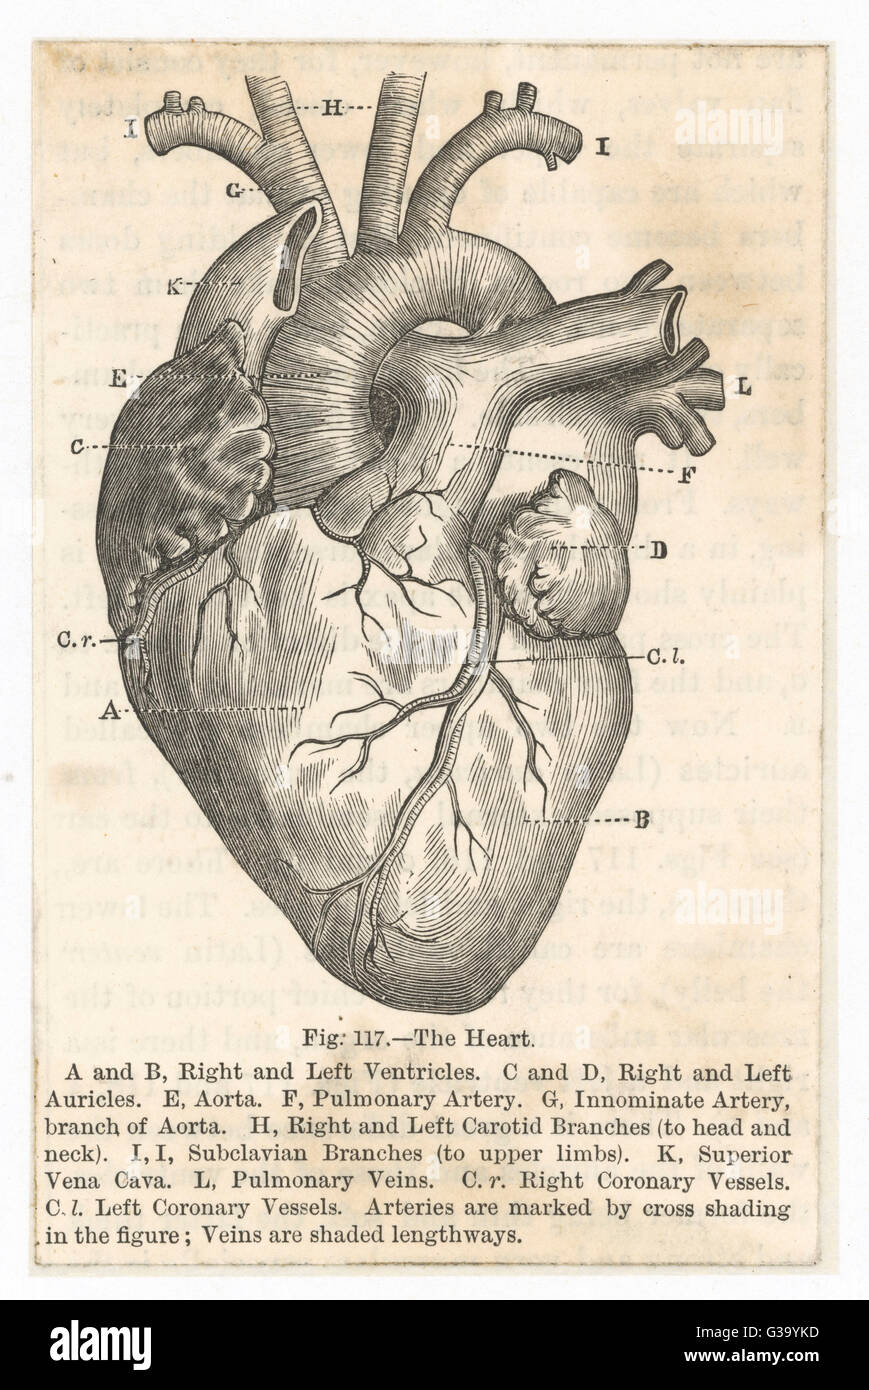 the heart showing the  ventricles, auricles, aorta,  arteries, carotid branches  and other associated  vessels  - Stock Image